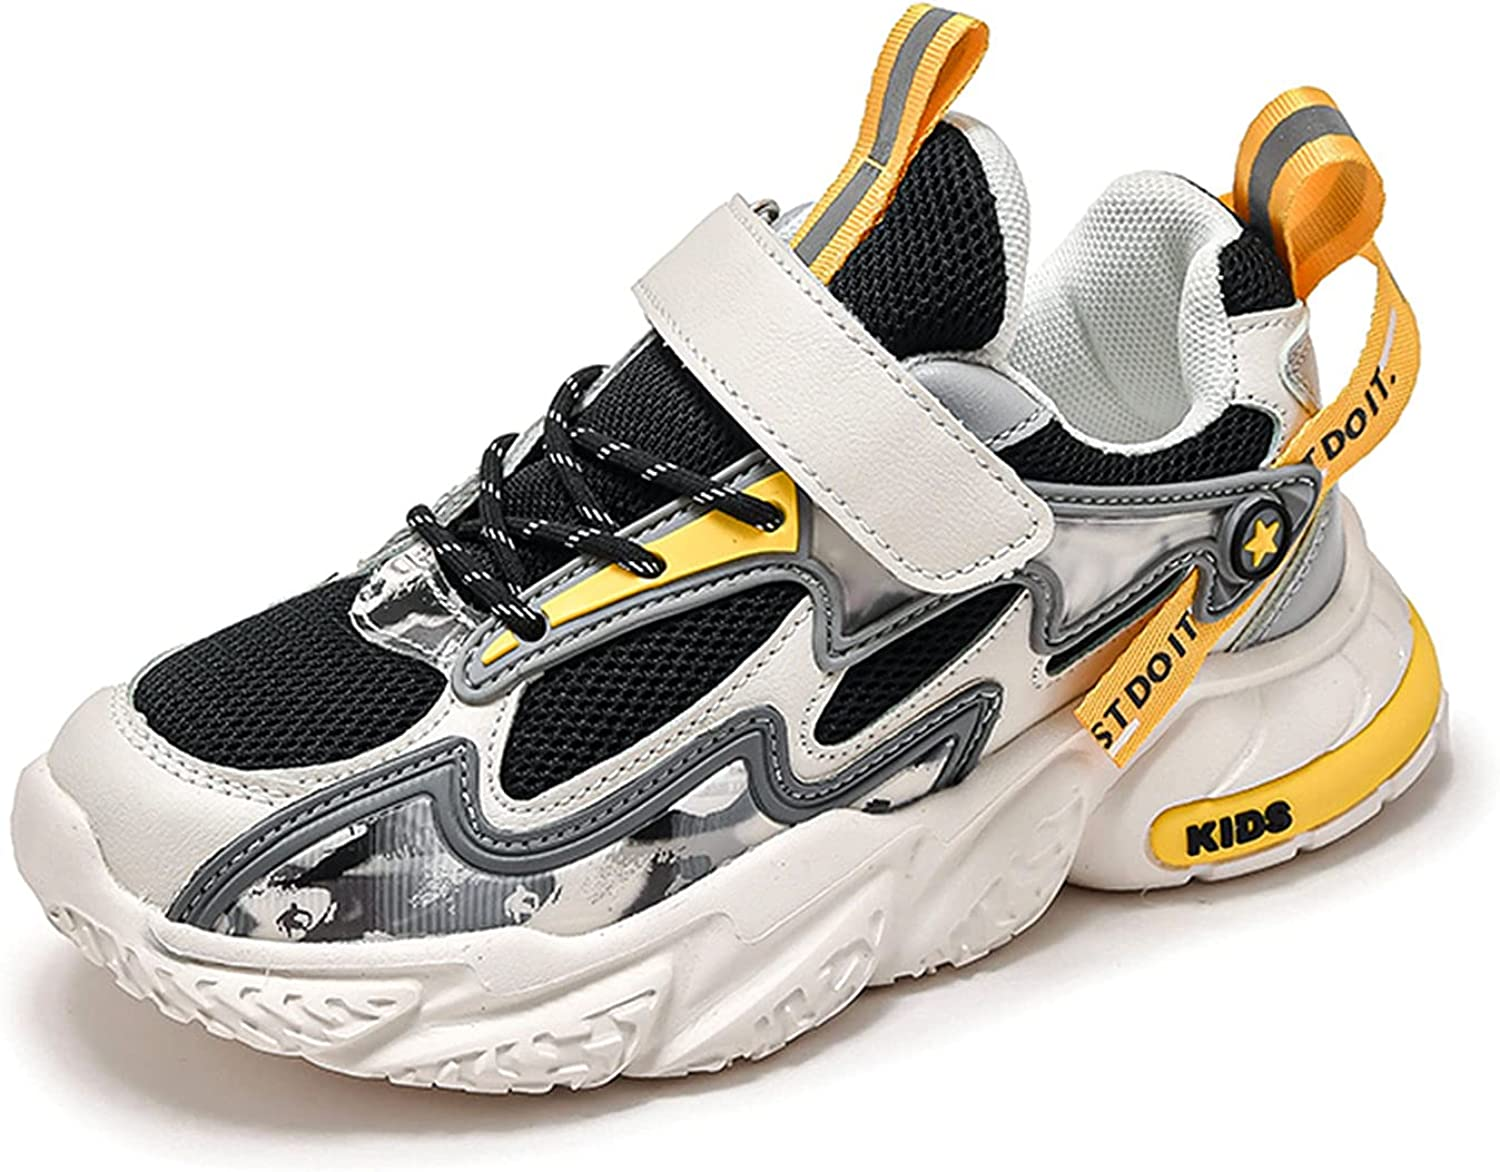 Narstin All-Match Children's Travel Shoes Boys' Fashion Sports Shoes Outdoor Durable Running Shoes Training Shoes